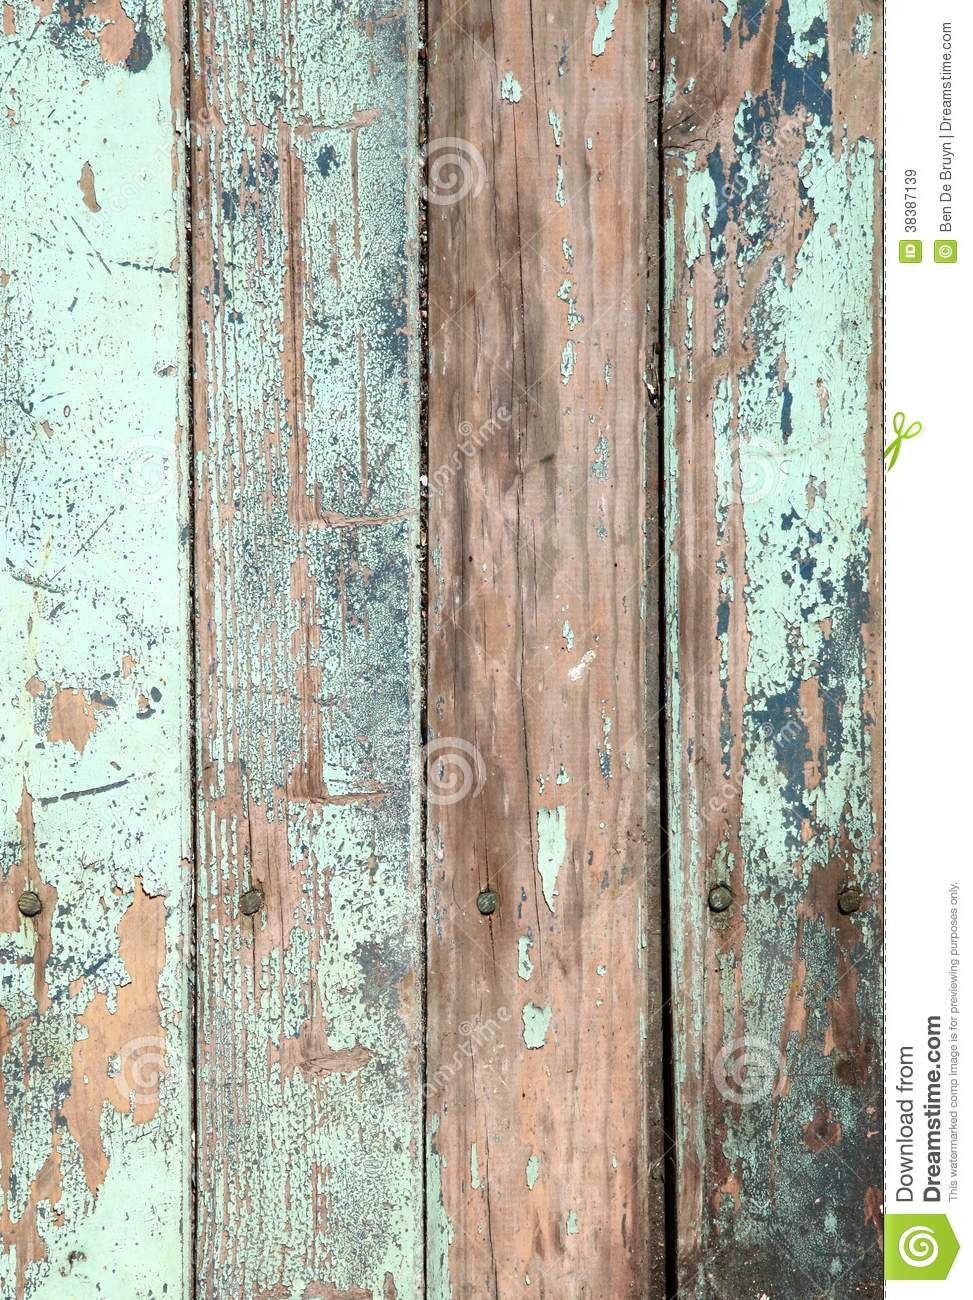 Weathered Old Wood Natural Blue Turquoise Paint Pe Stock